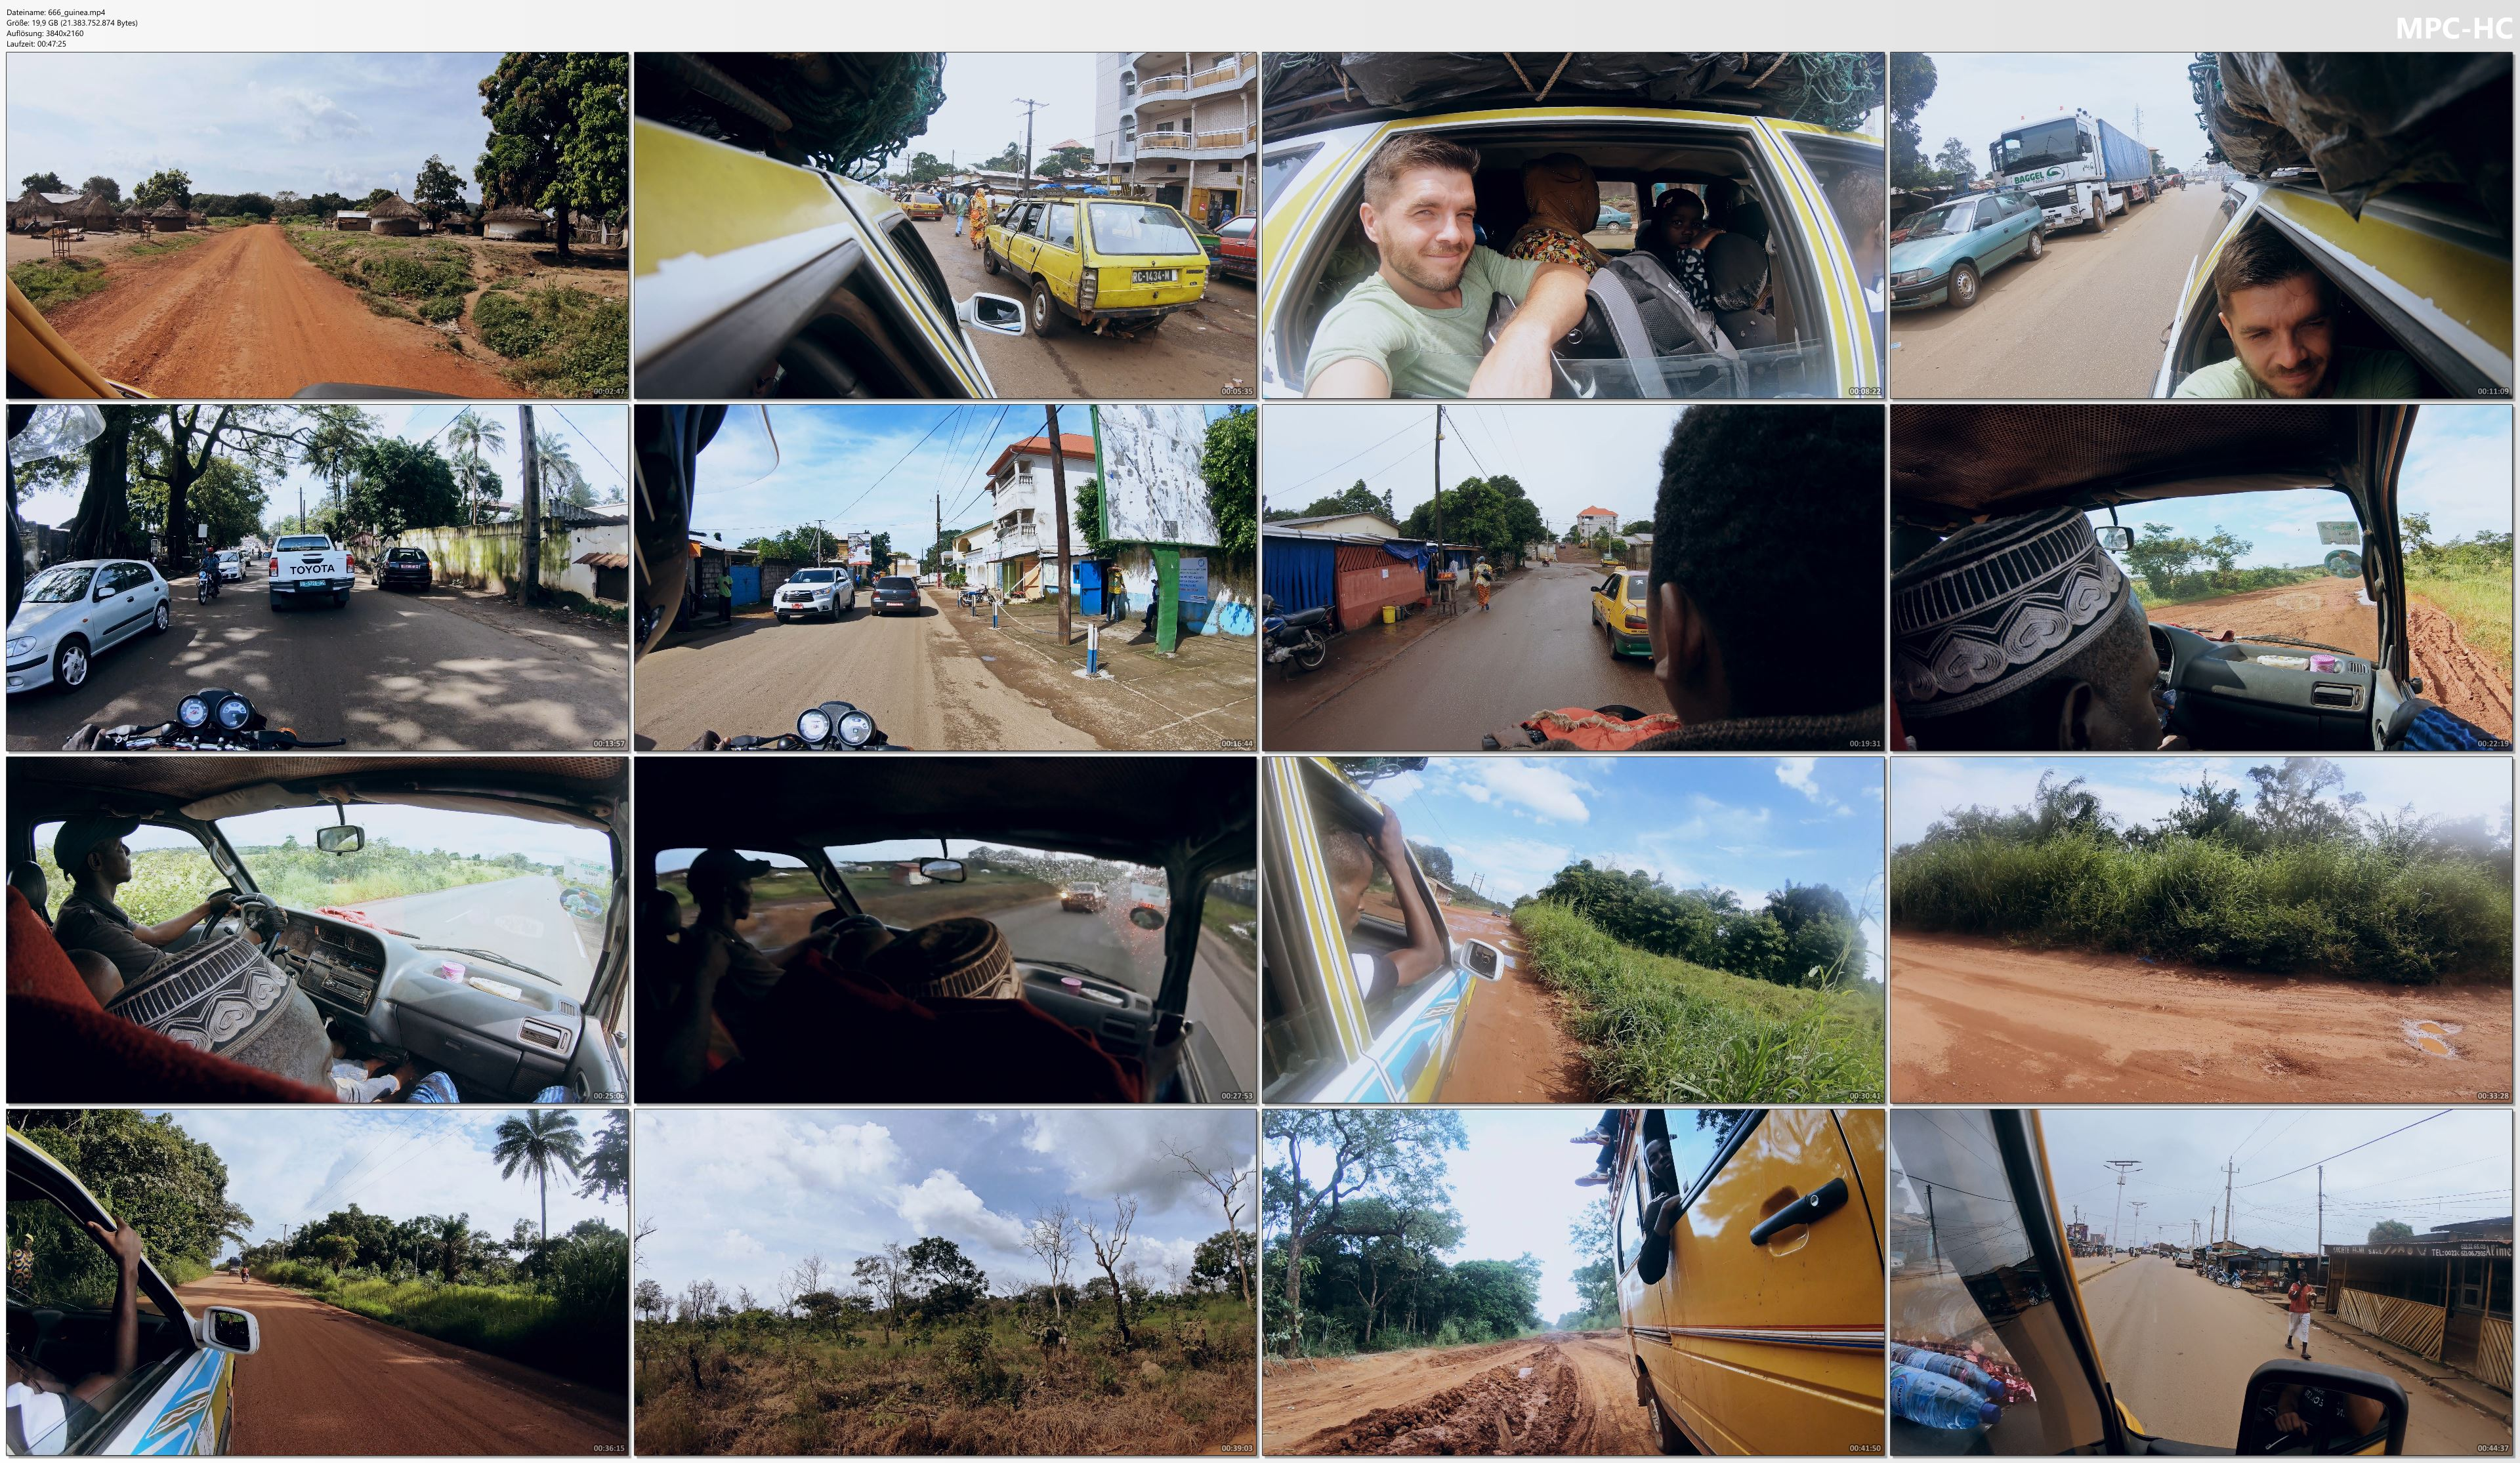 Pictures from Video 【4K】48 MINUTES | Driving Guinea (West Africa) | 2020 | Conakry | UltraHD Travel Video